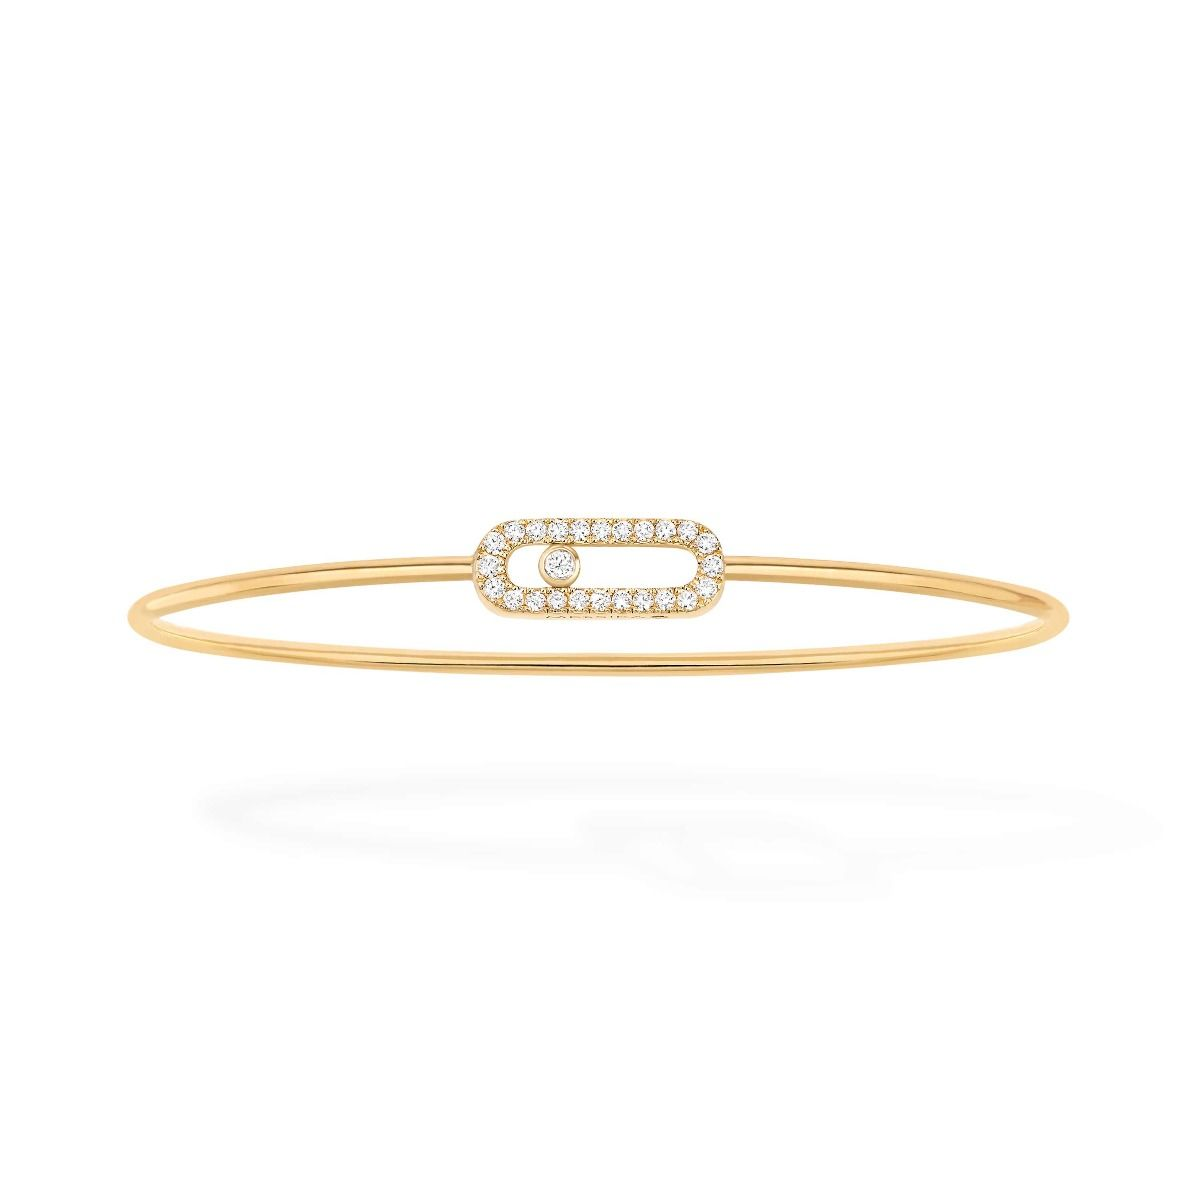 Move Uno Thin Bangle Bracelet - Yellow Gold